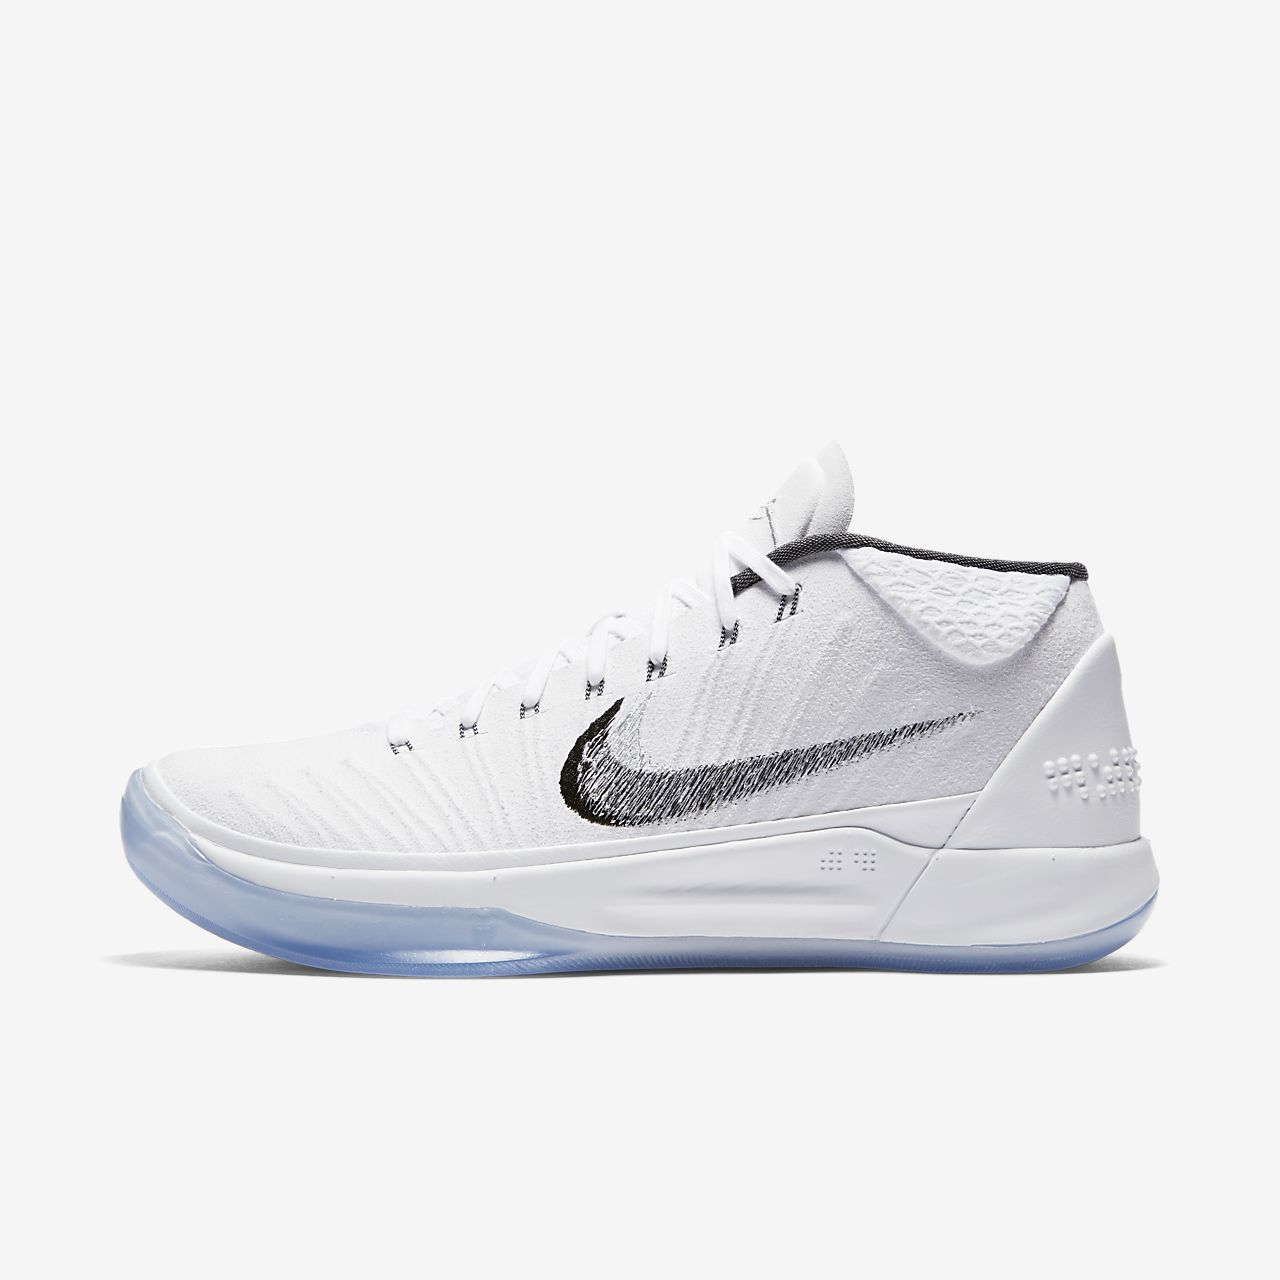 Nike Kobe AD basketball shoes  B072JZWT9N